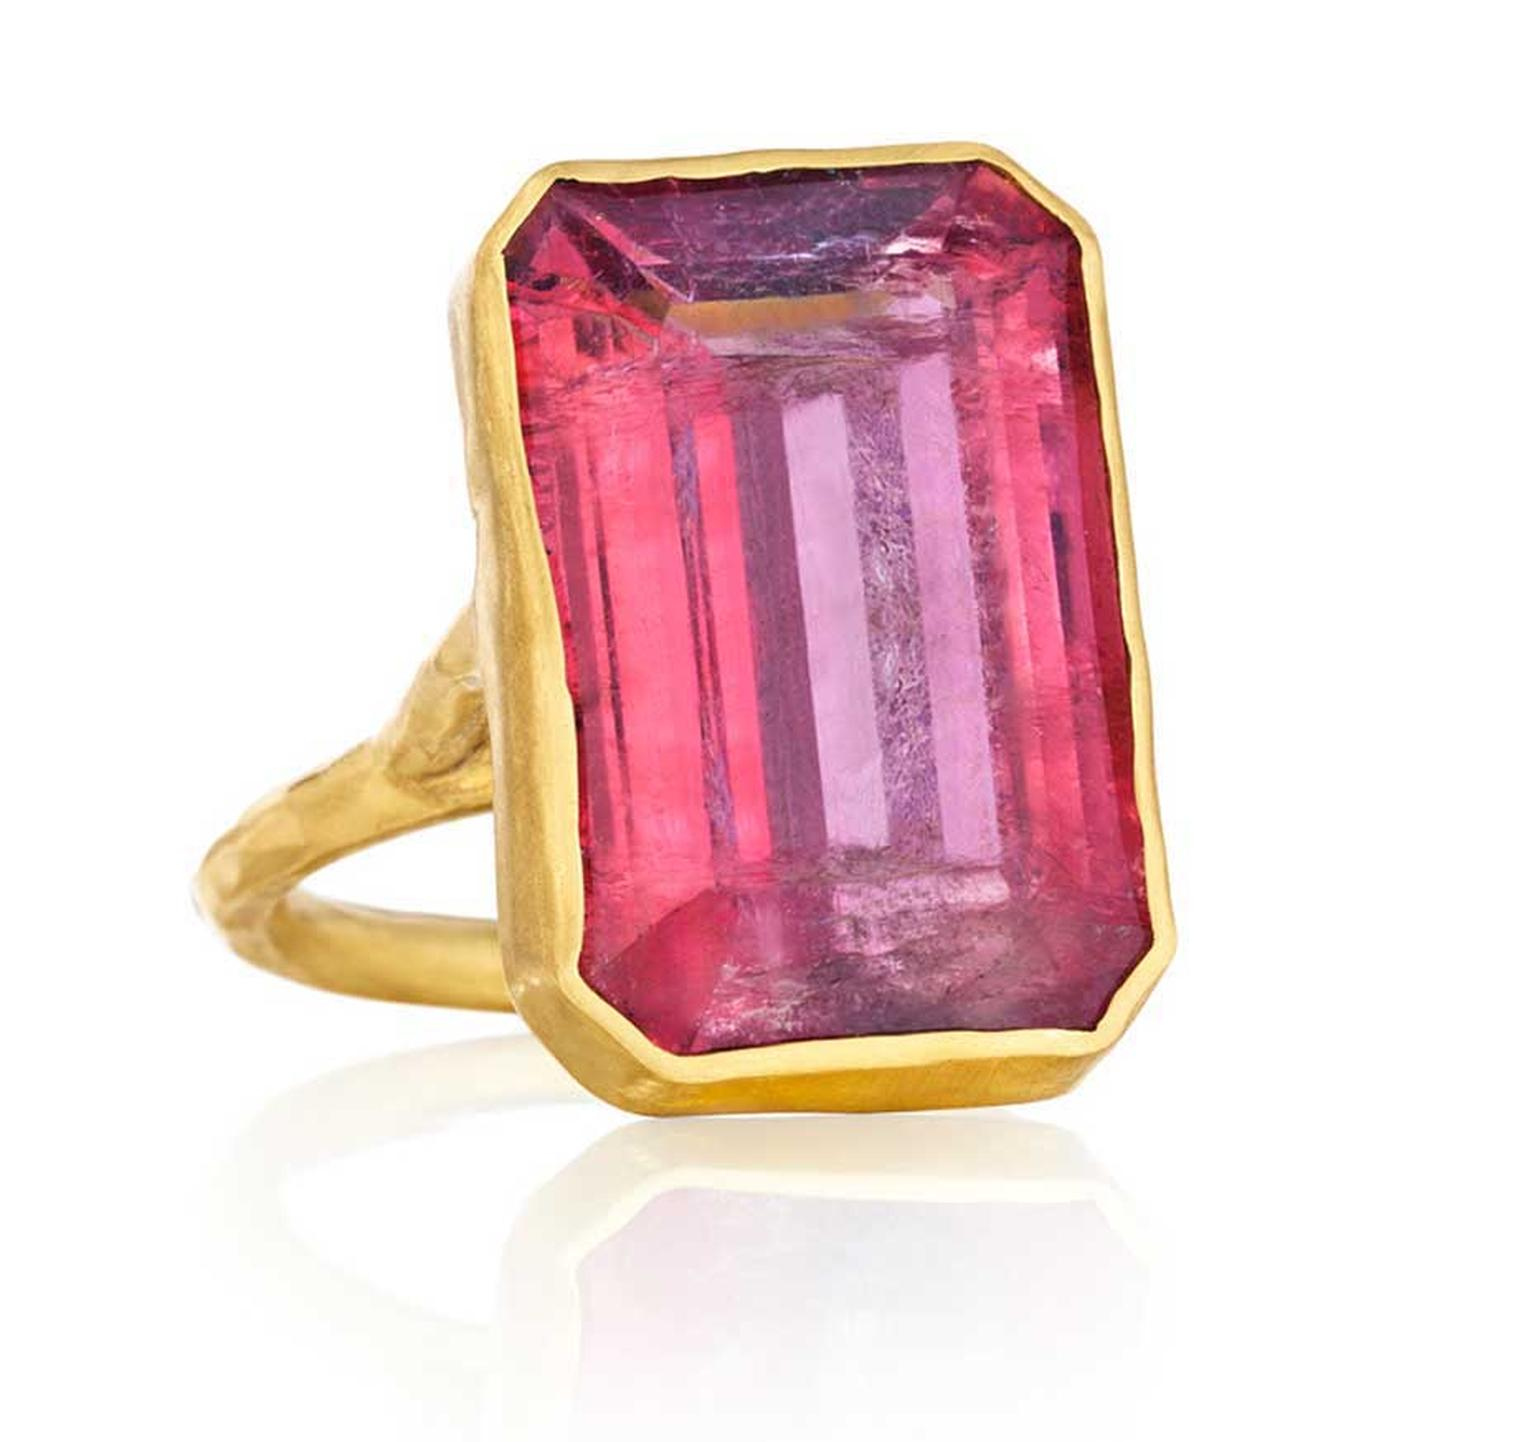 One-of-a-kind gold Margery Hirschey pink tourmaline ring.